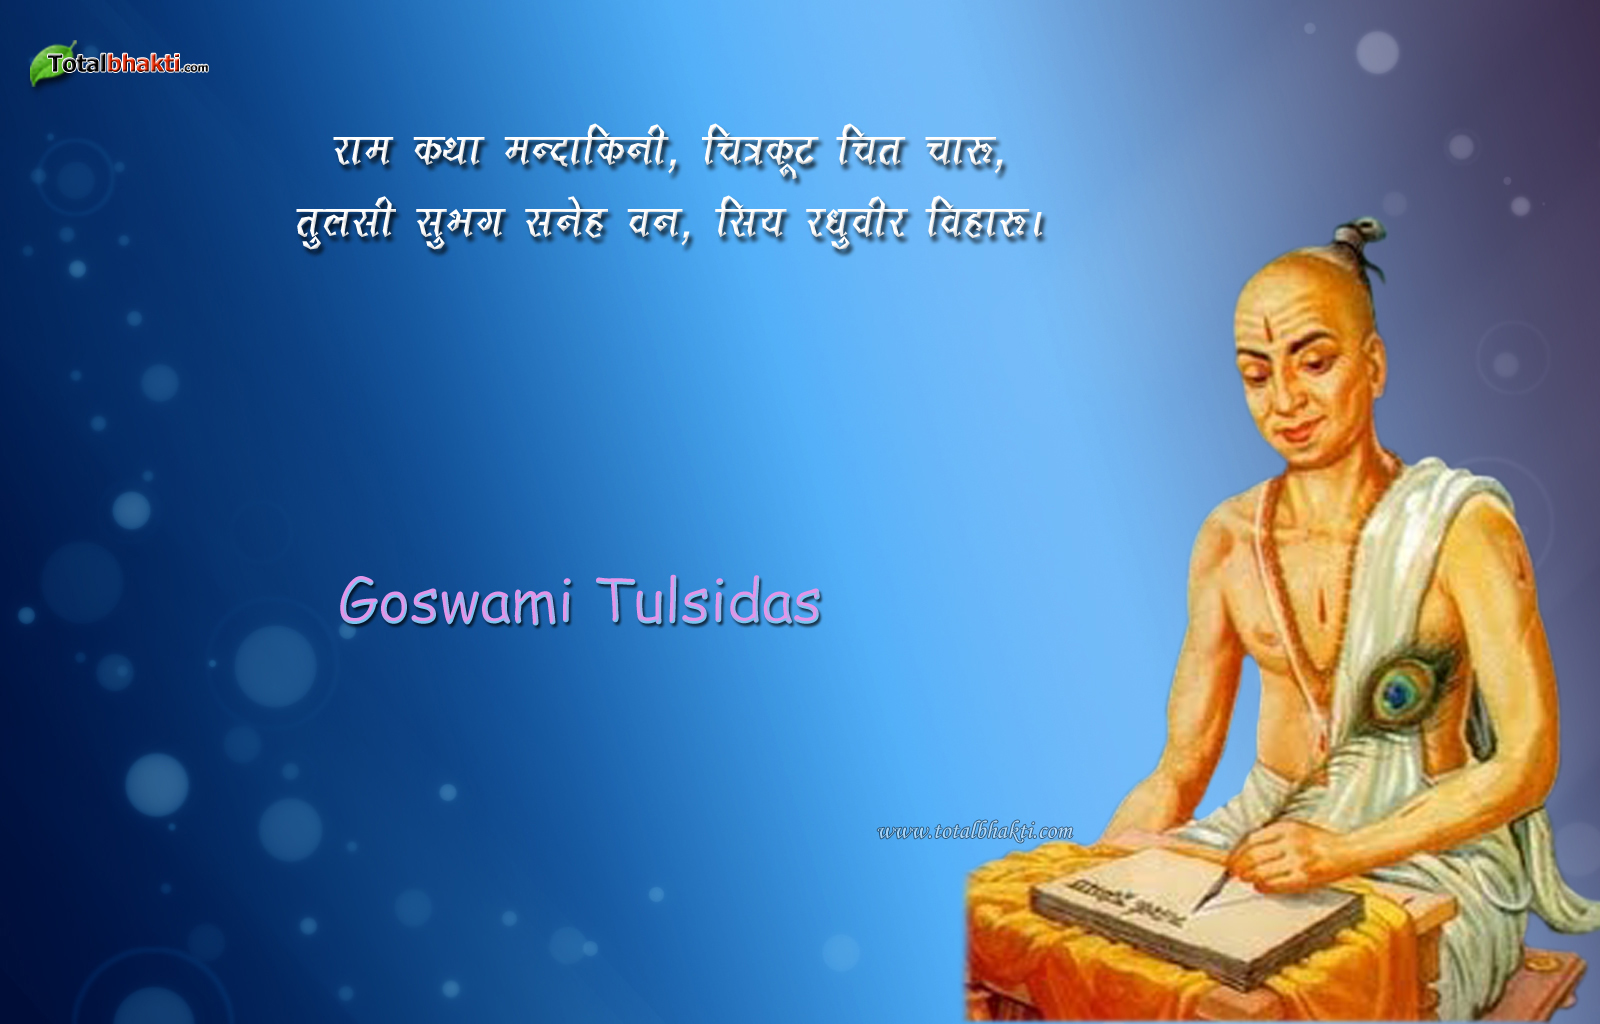 Wish You Happy Tulsidas Jayanti 2015 Images Photos Wallpapers Whatsapp FB DP